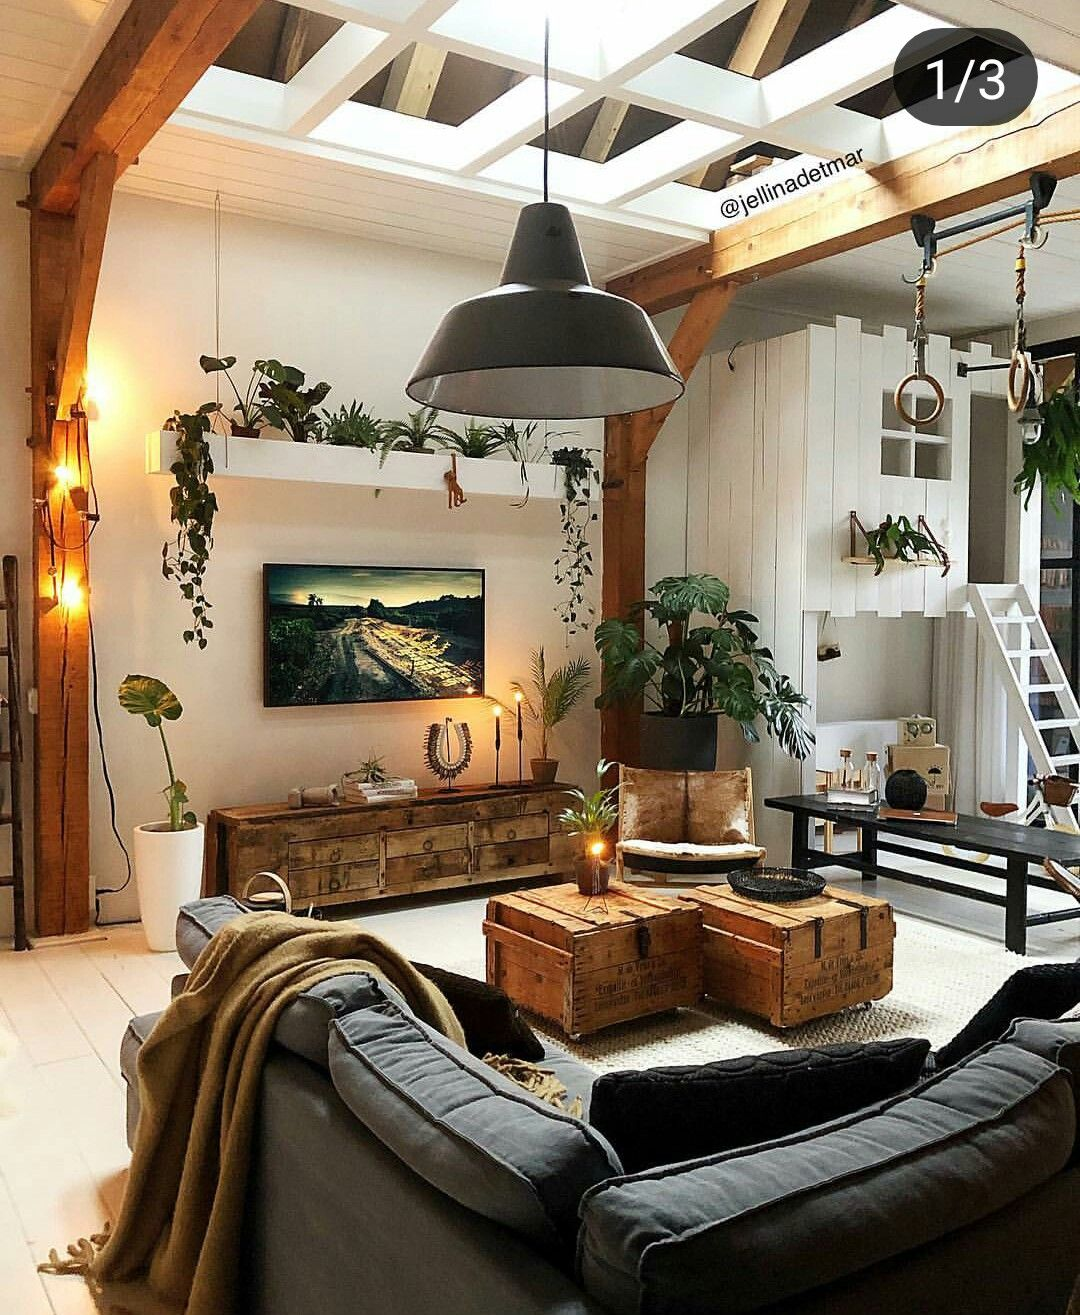 Plant Holder Above Tv Is A Great Idea Living Room Design Modern Small Modern Living Room Small Living Room Decor